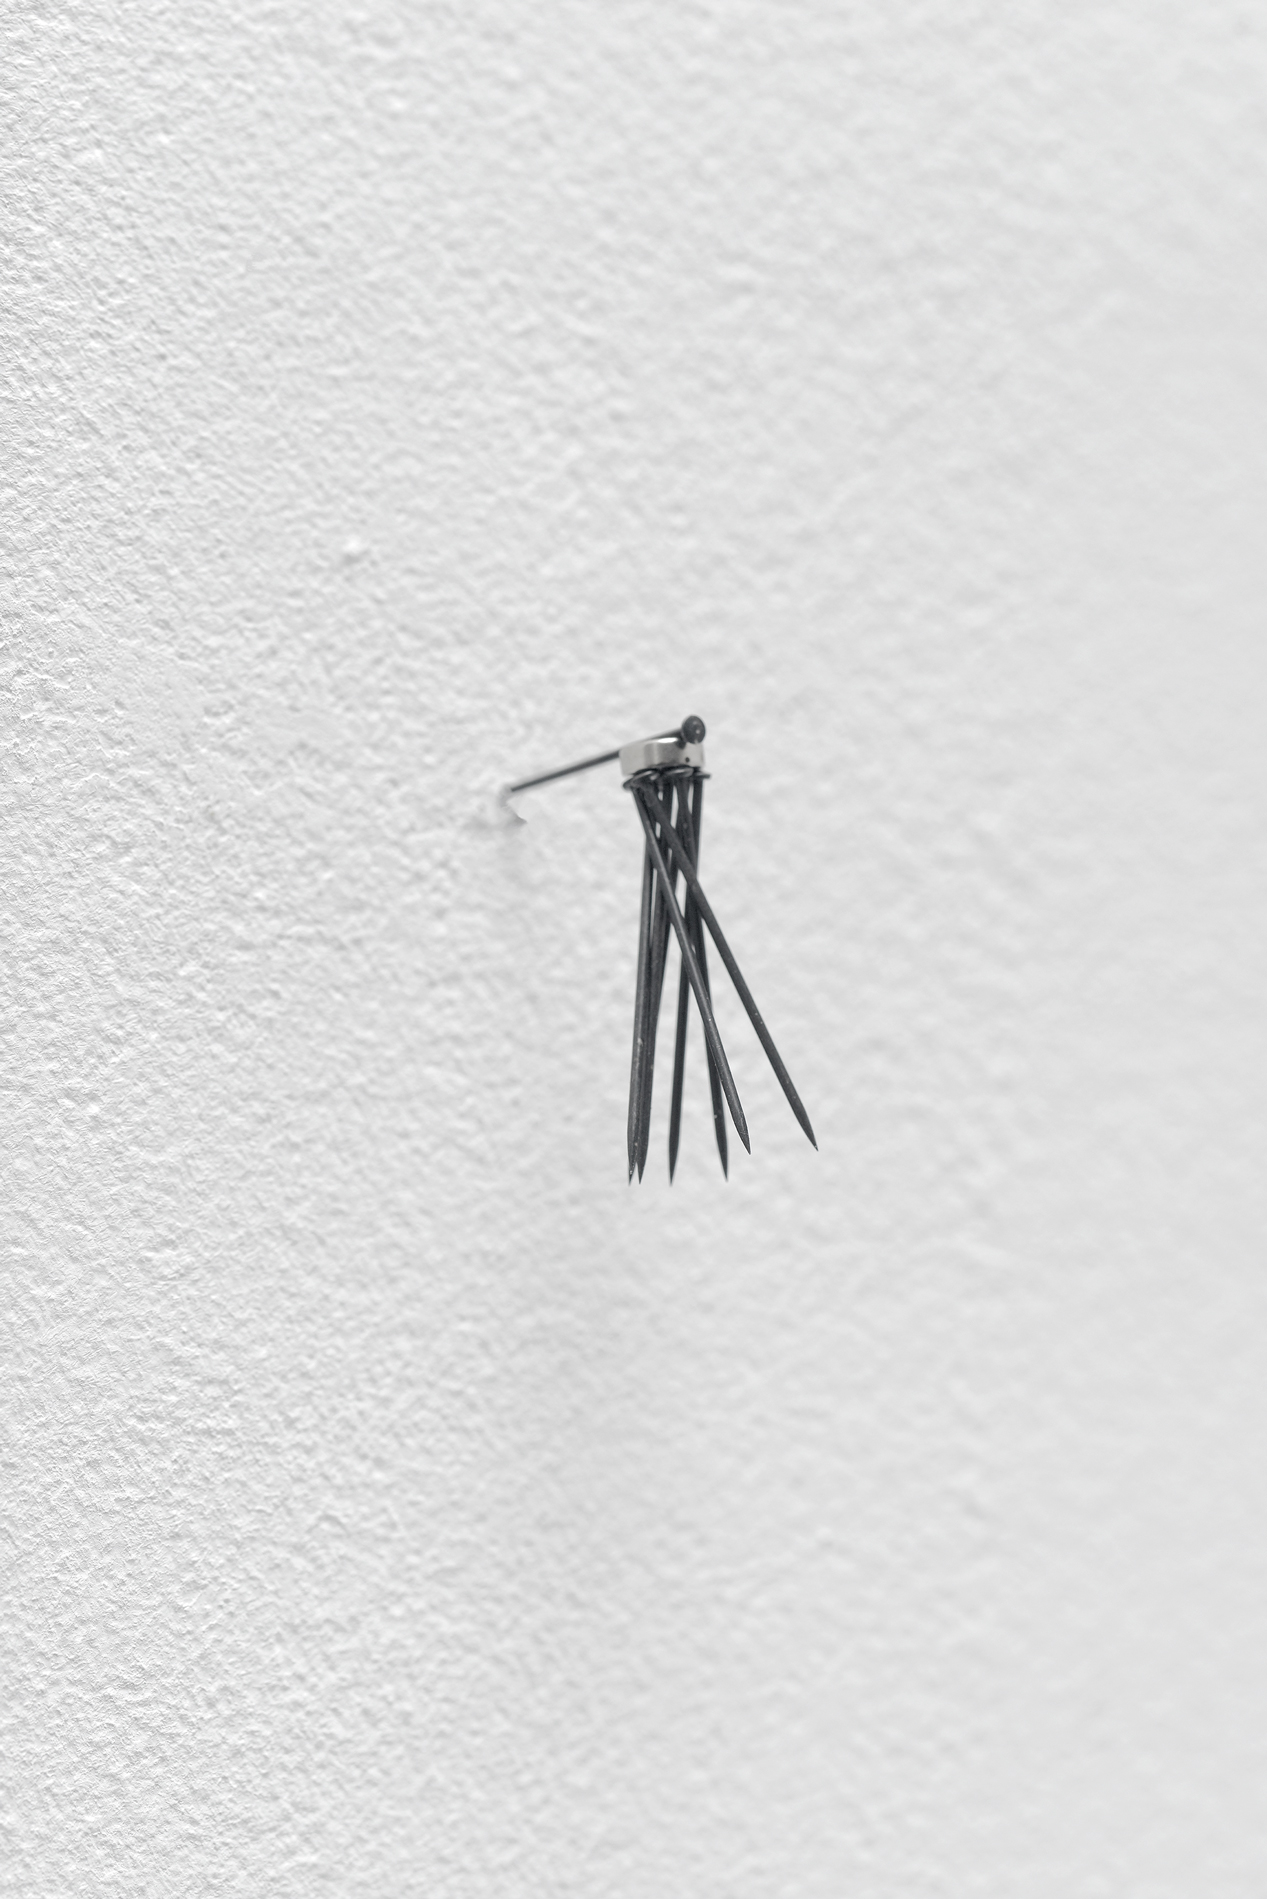 , 2017, Steel pins and magnet, 3,5 x 3 x 2 cm, , unique artwork, Photo: Aurélien Mole, Collection Alexis Jakubowicz, Paris